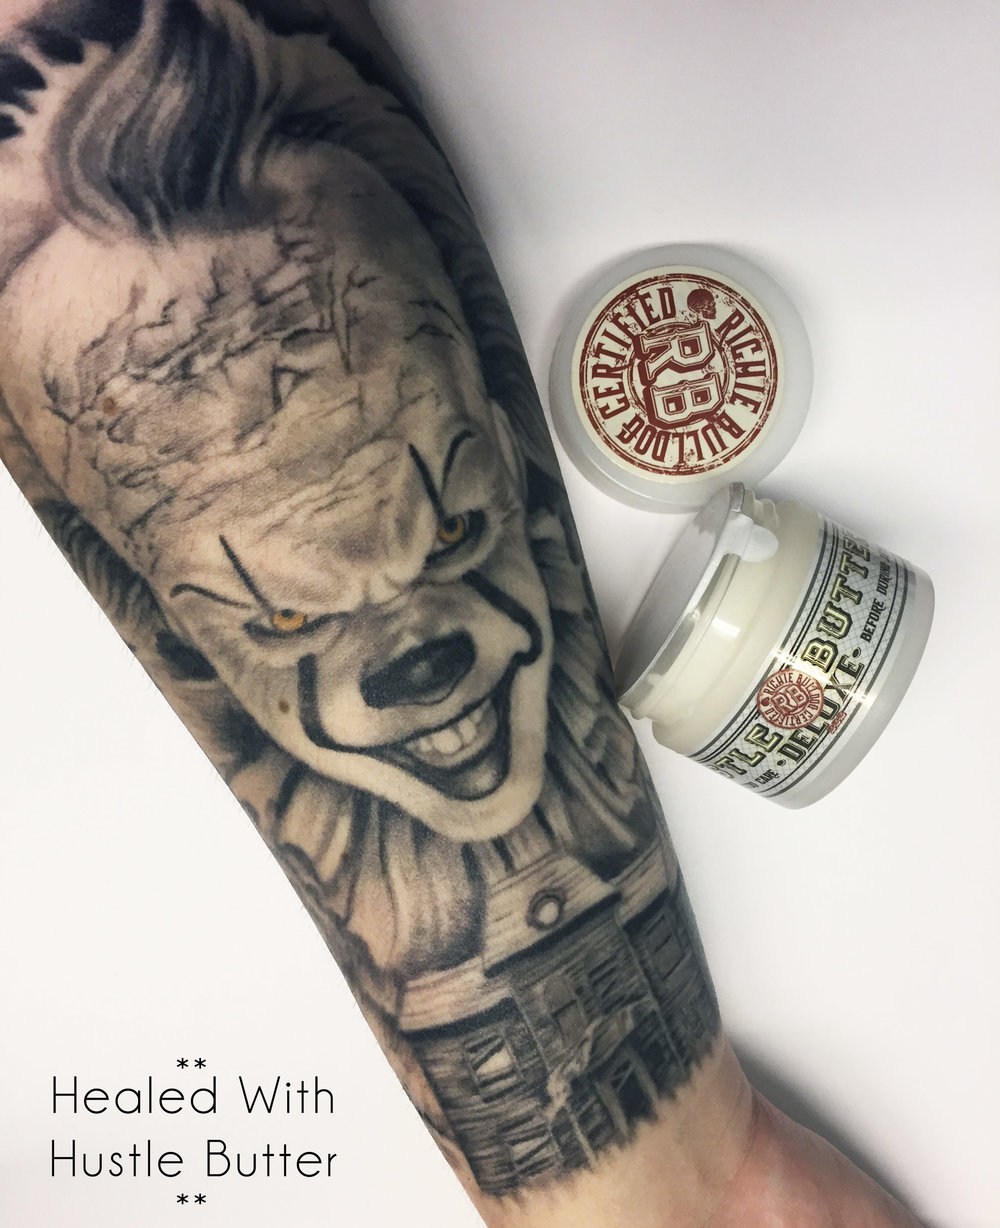 We have hustle butter for sale at the shop now!  This stuff is seriously awesome. Its 100% vegan and is made from Mango, shea, and aloe butters. Plus it smells amazing, trust us.  We have 1 oz tubs for sale at the shop so if you're in the market for a new tattoo aftercare product, come by and pick one up!    Click here to visit Hustle Butter's website